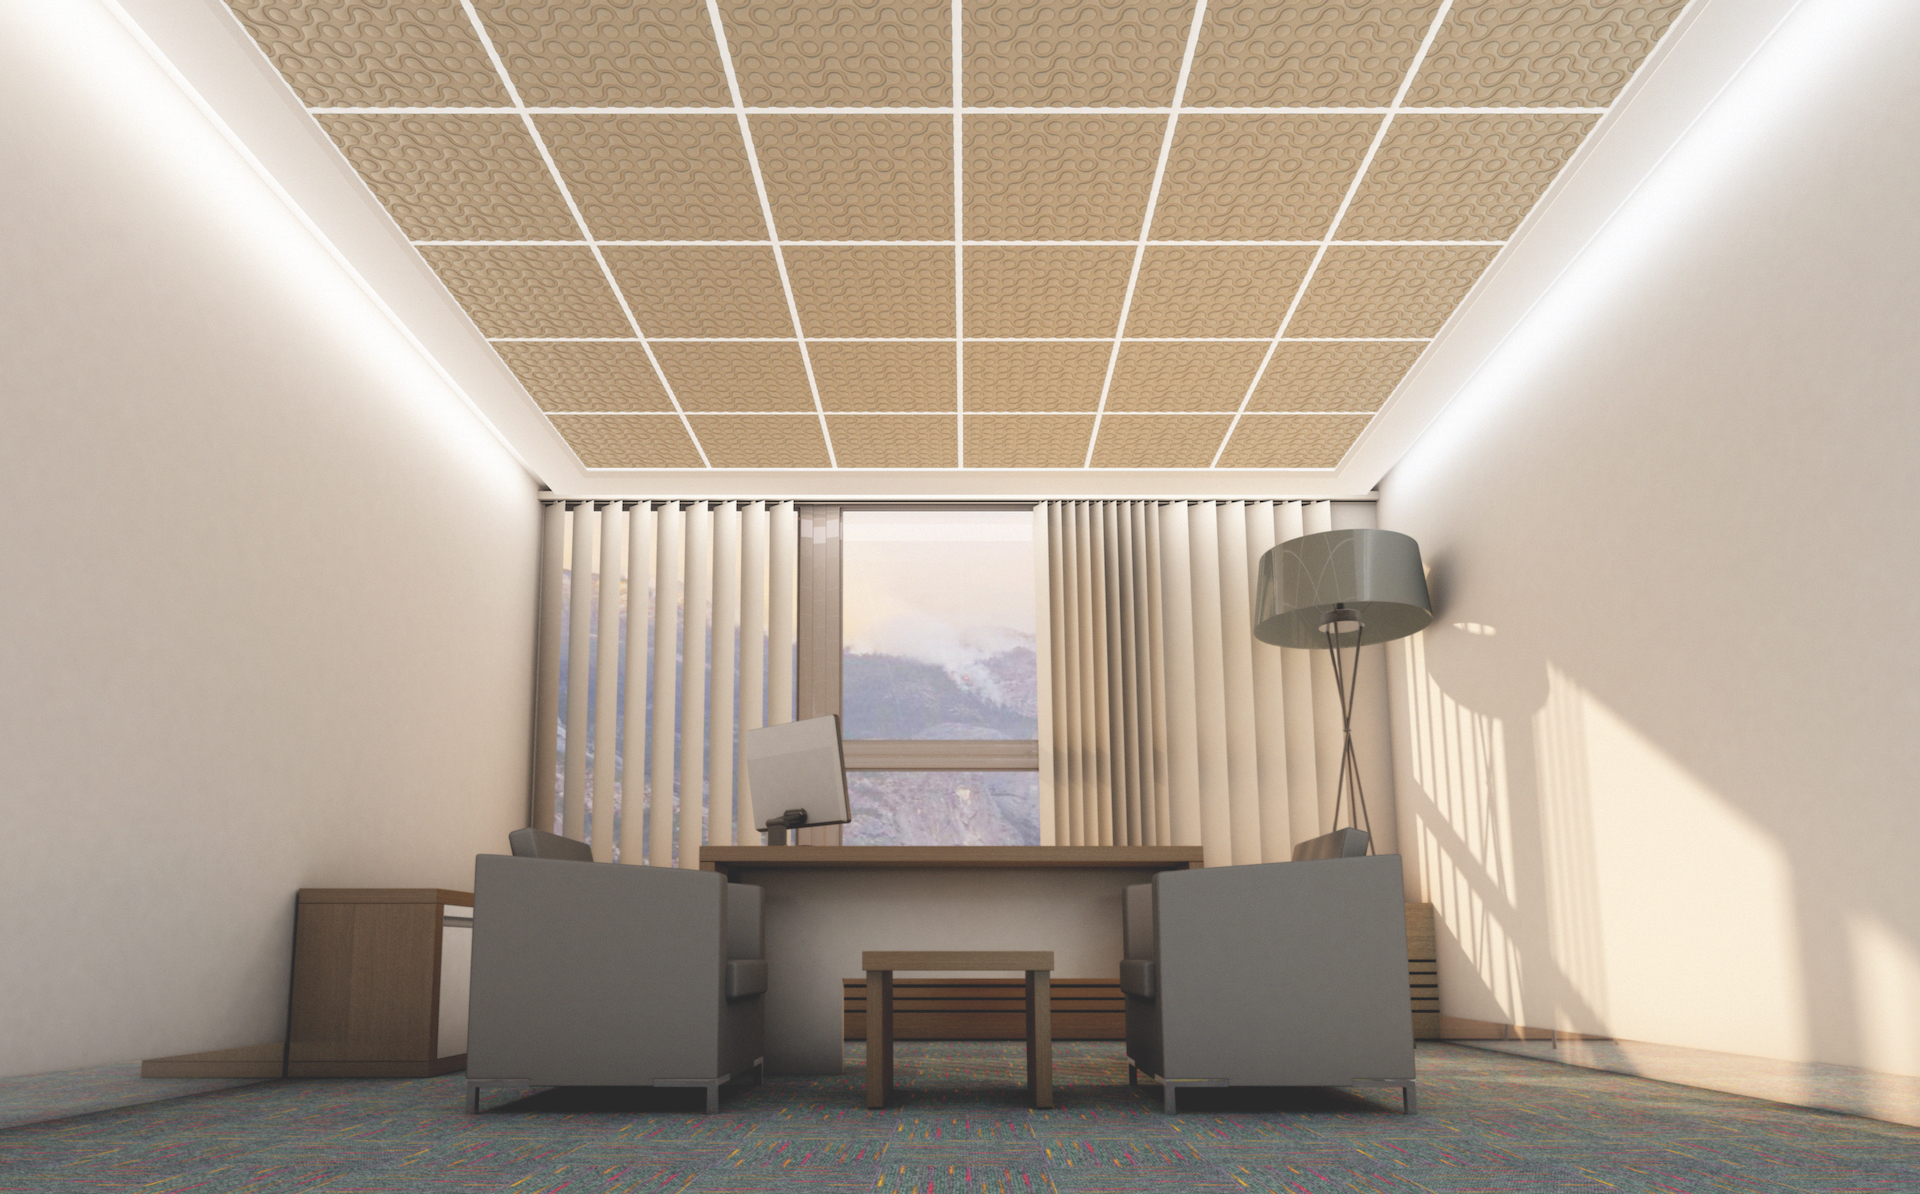 vicceiling_office_3